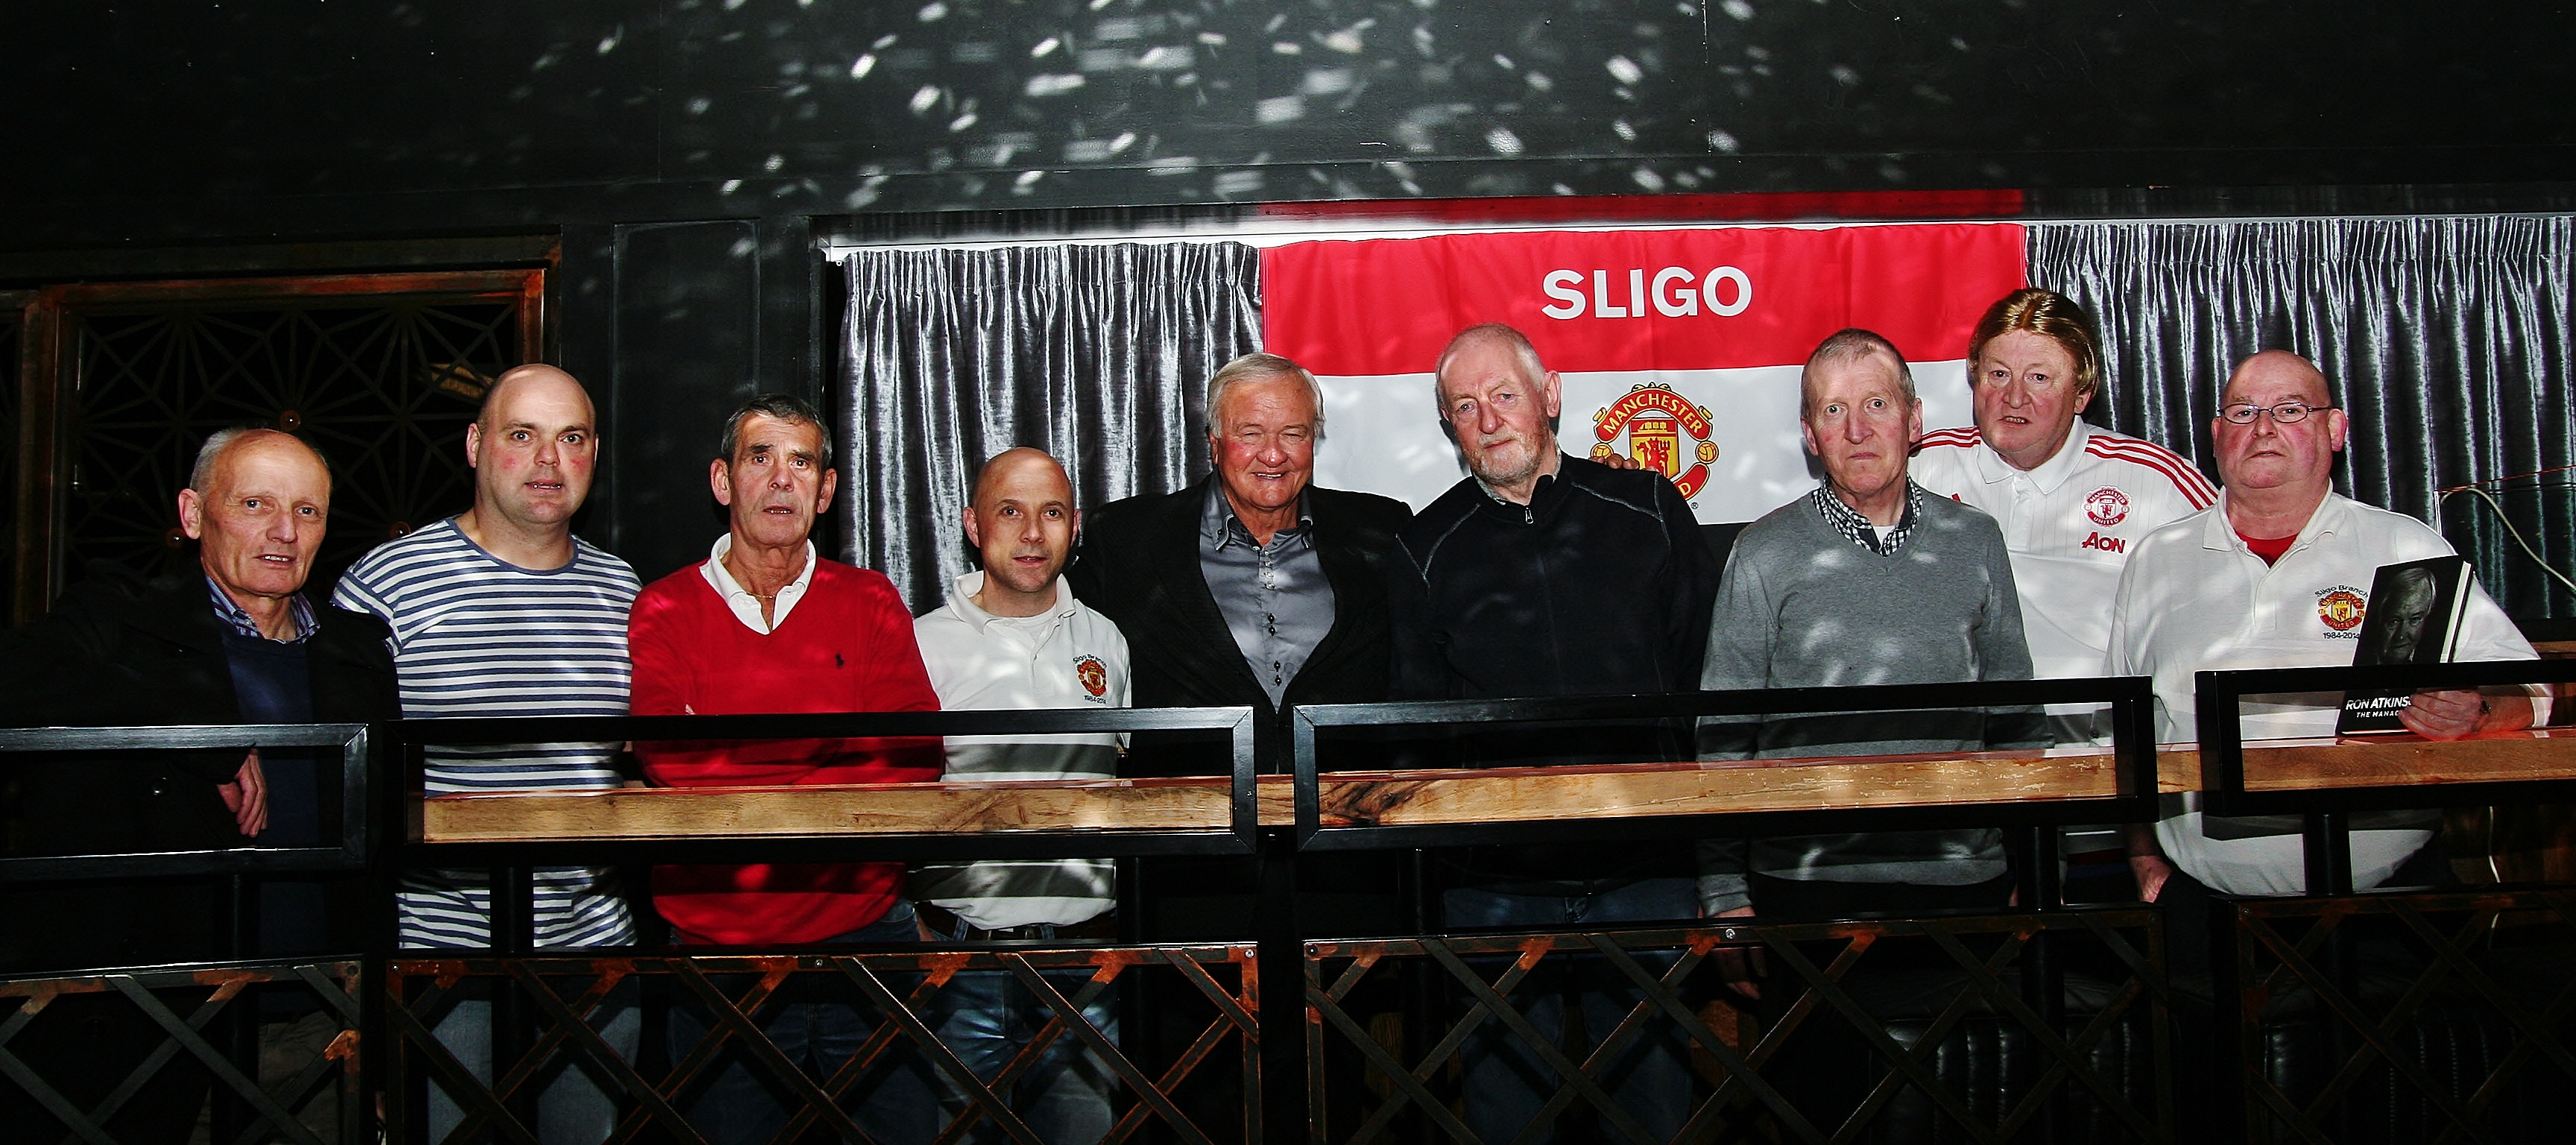 Ron Atkinson & Sligo Branch committee members